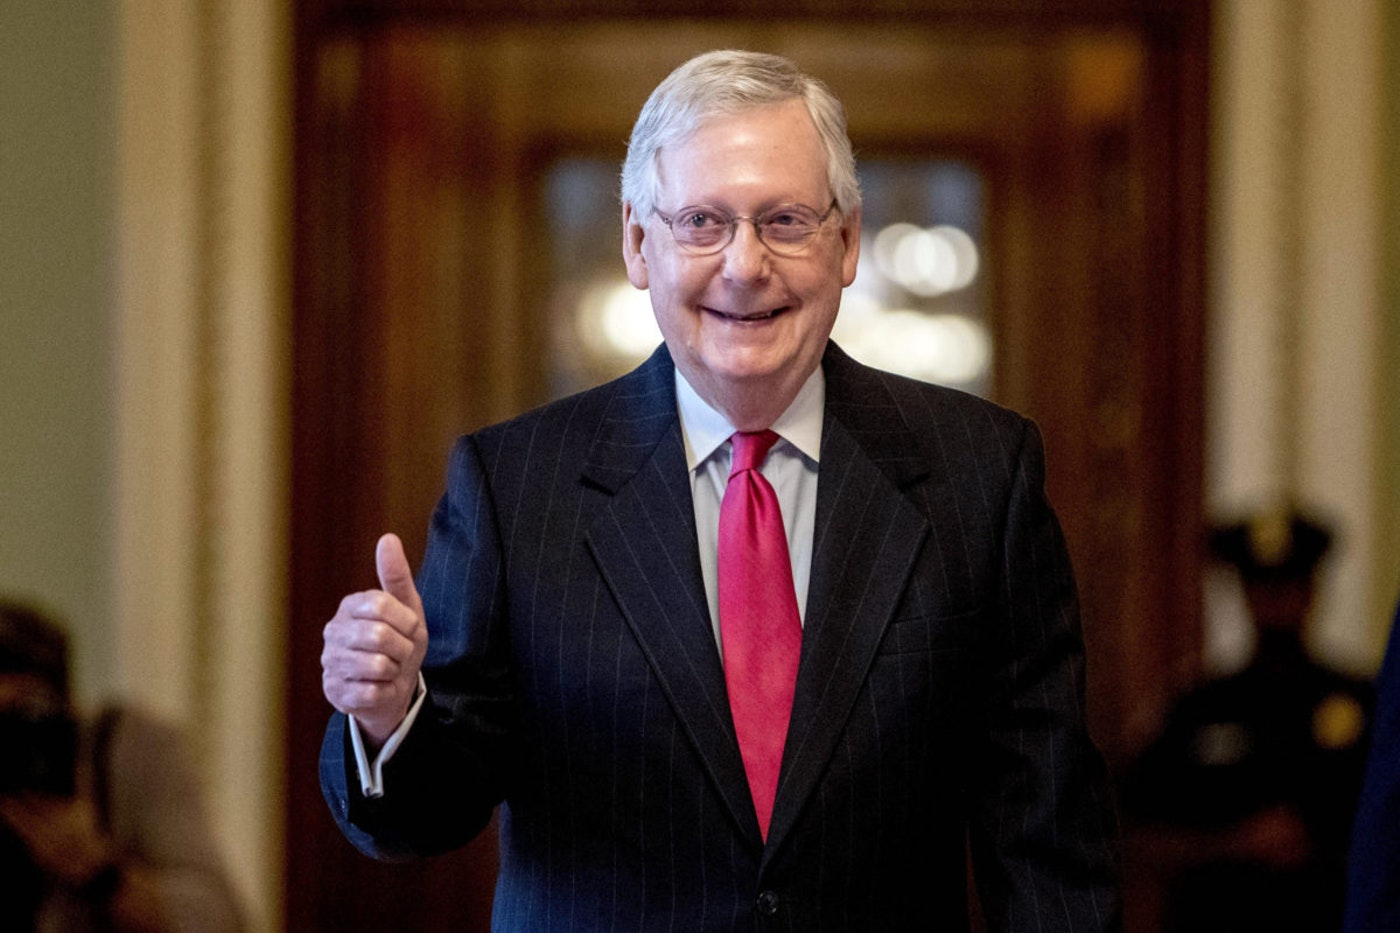 In this March 25, 2020, file photo, Senate Majority Leader Mitch McConnell, R-Ky. gives a thumbs up as he leaves the Senate chamber on Capitol Hill in Washington, where a deal has been reached on a coronavirus bill. Overwhelmed Kentucky and New York officials face a deluge of mail-in votes that are likely to delay results for days in high-profile congressional primaries on Tuesday, June 23. There's a lot of interest in two contests in particular. One involves former Marine combat pilot Amy McGrath's fight for the Democratic nomination to challenge Senate Majority Leader Mitch McConnell. (AP Photo/Andrew Harnik)